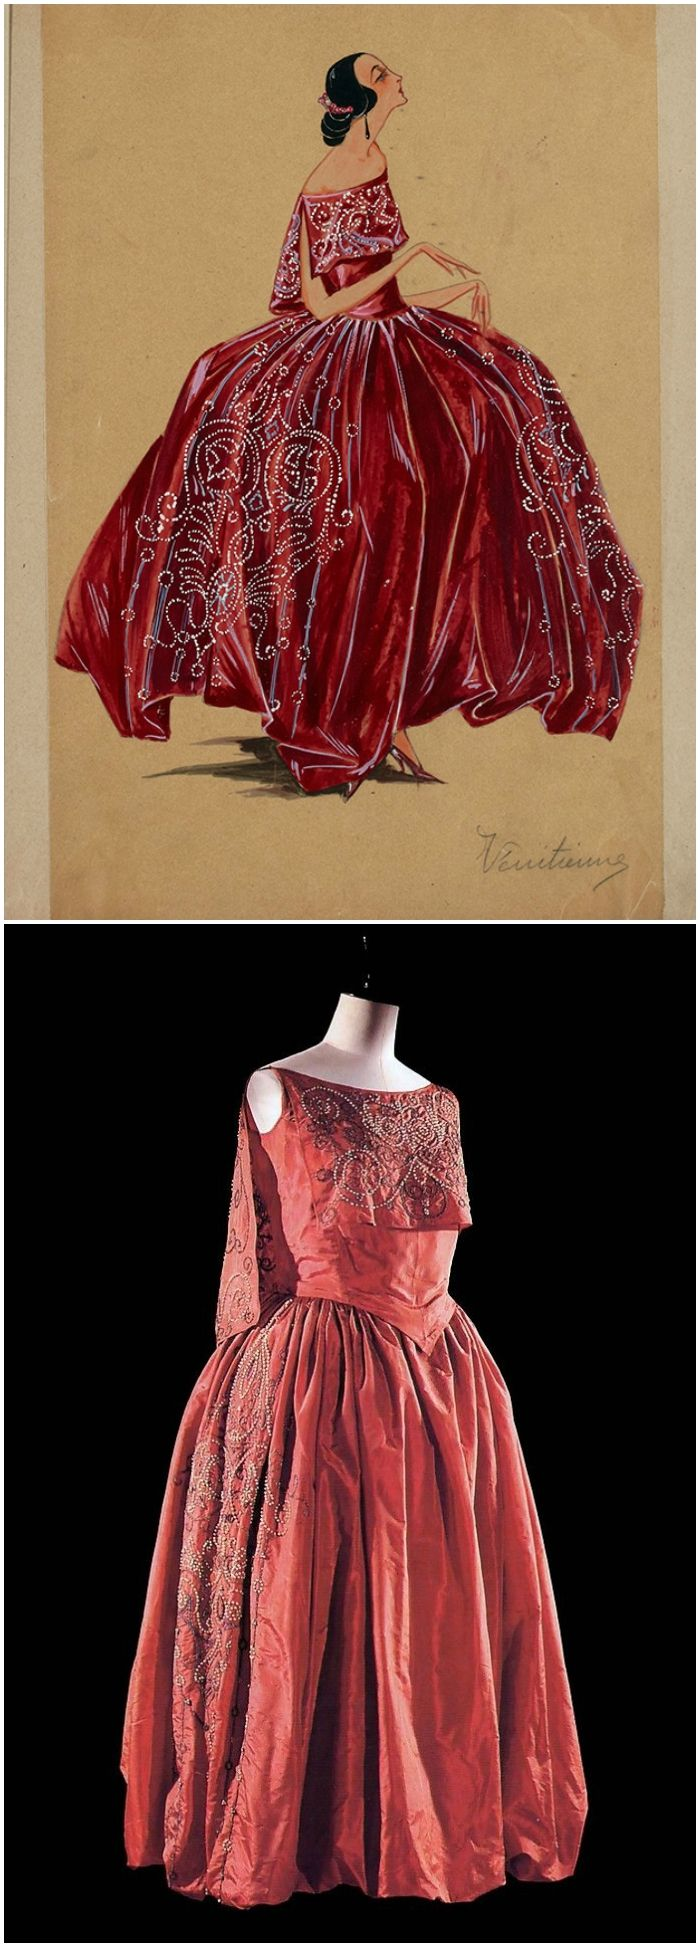 "Dress, ""Vénitienne,"" by Jeanne Lanvin, 1921-22. Photos via: (Top): Maximidimini."